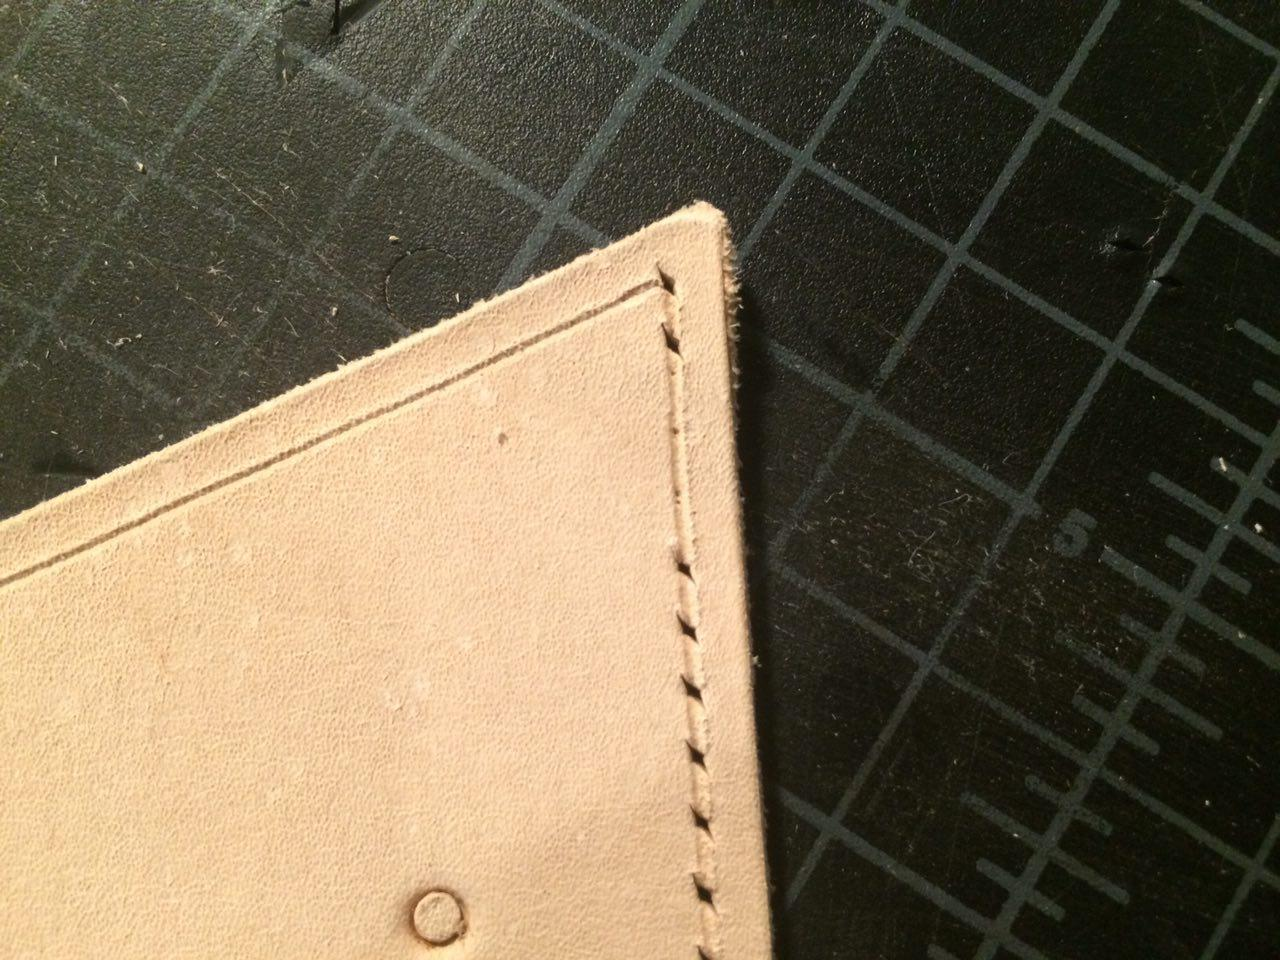 Stop creating stitching holes before you reach the corner. Then put a hole in the corner. (click to enlarge)